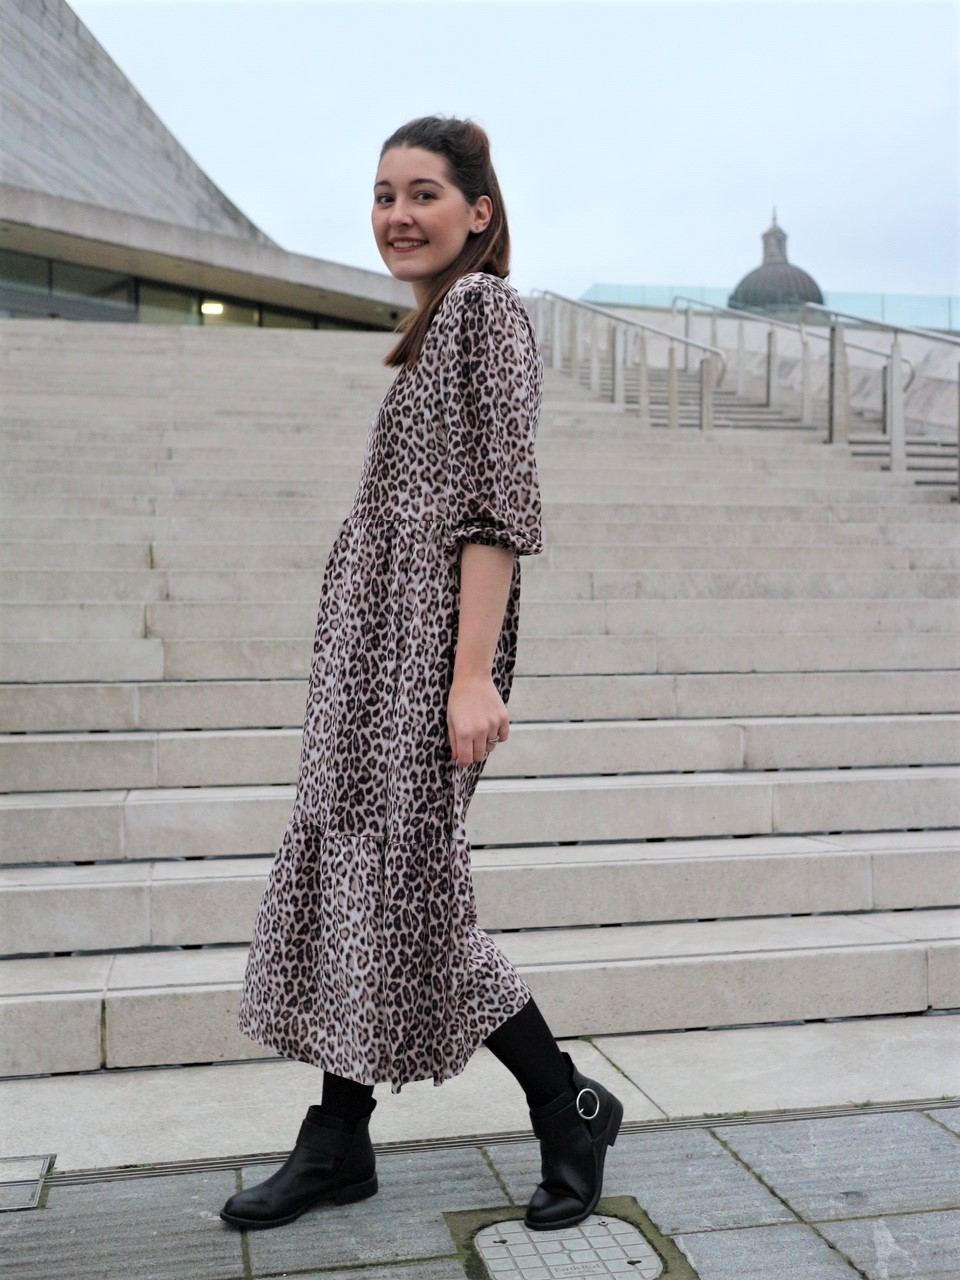 New Year. New Resolutions. Making Plans for 2020. Leopard Print Love. Leopard Lovers. Casual Style. Lifestyle blog.